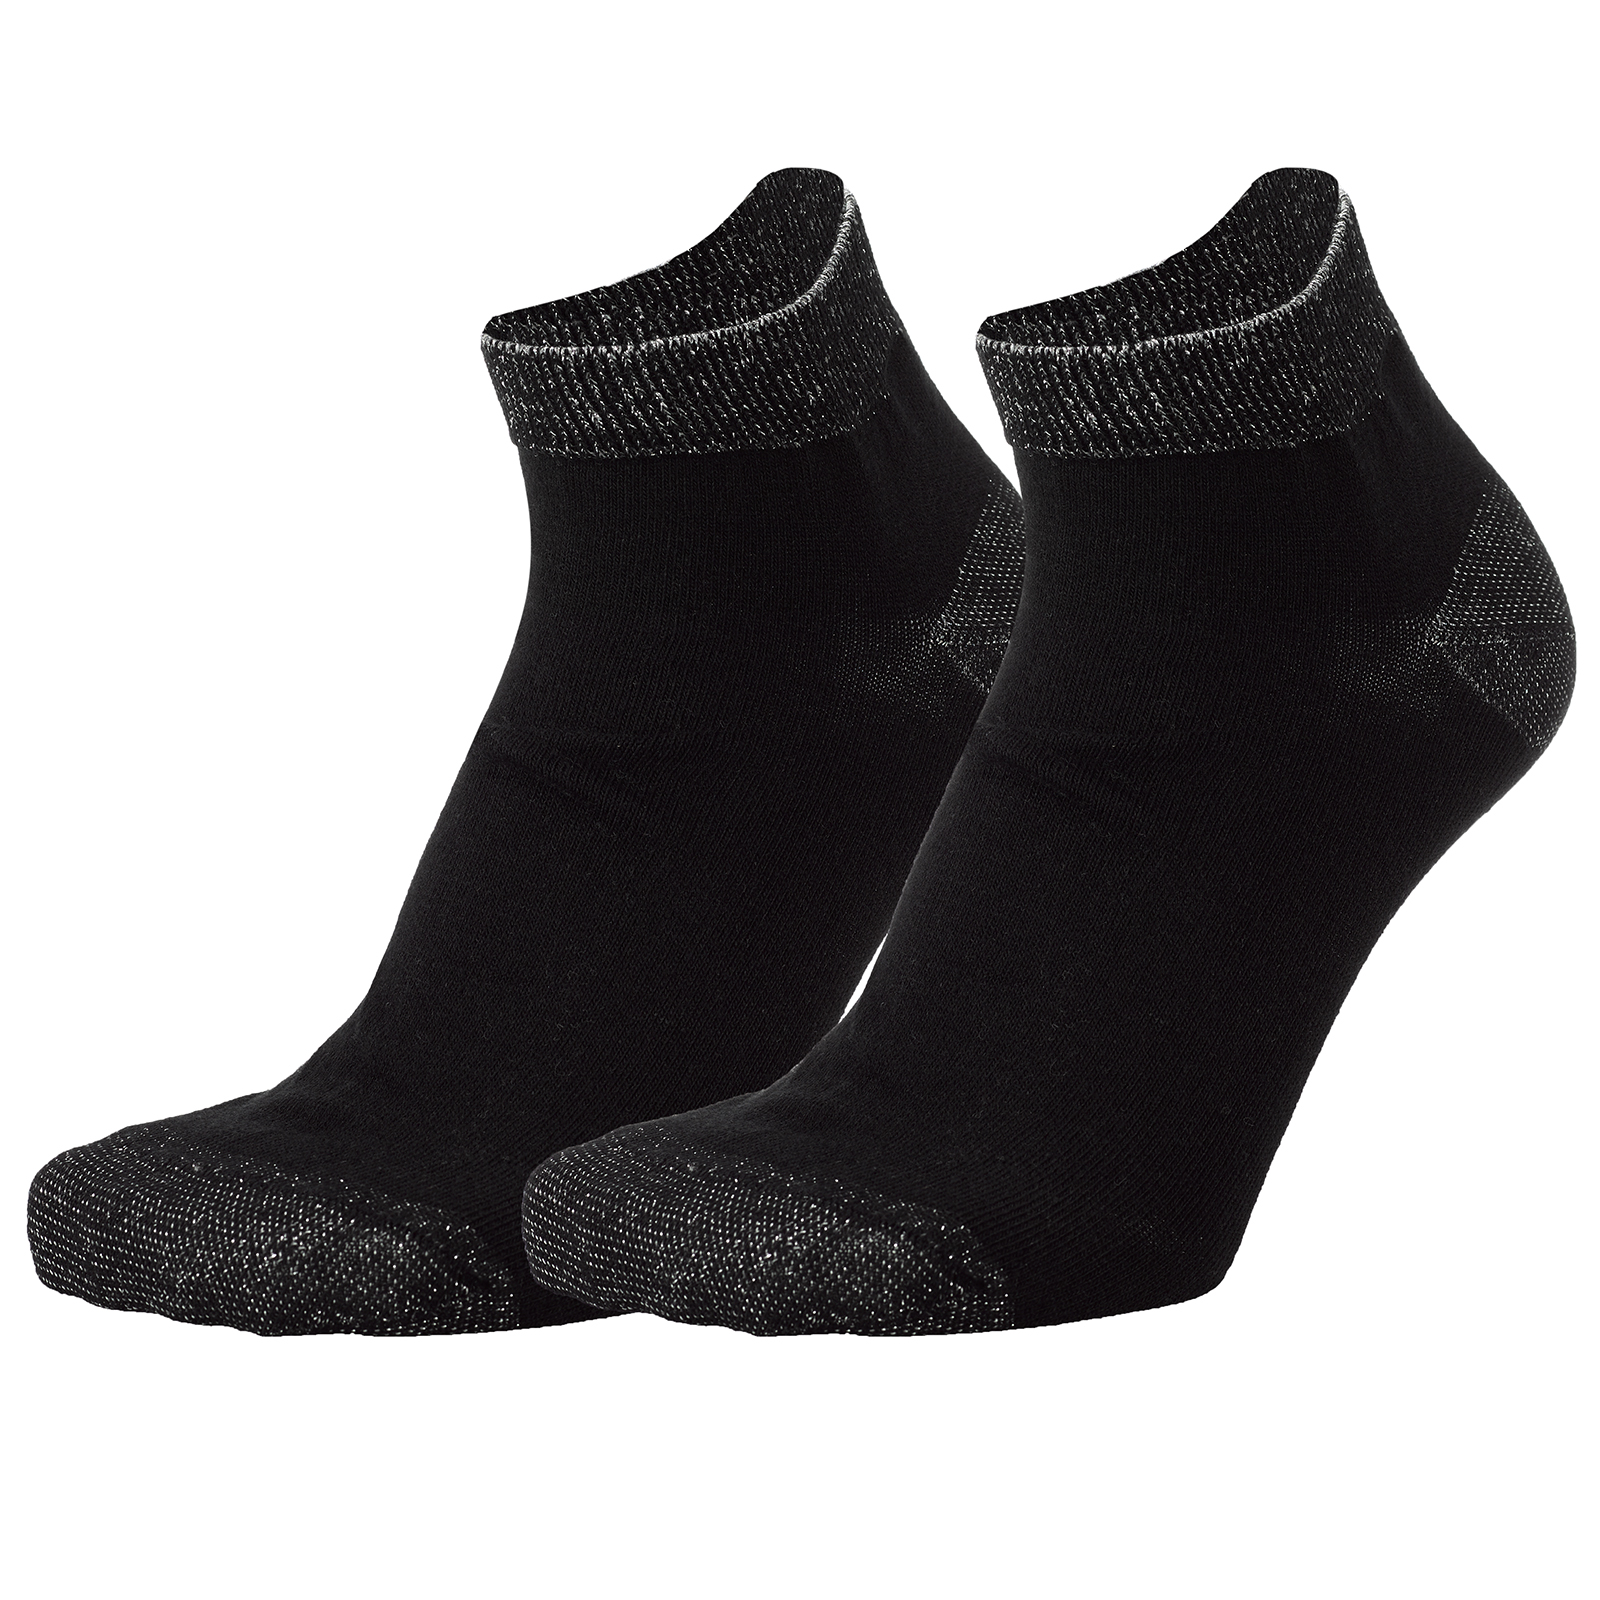 Ladies functional golf socks with stylish shining thread